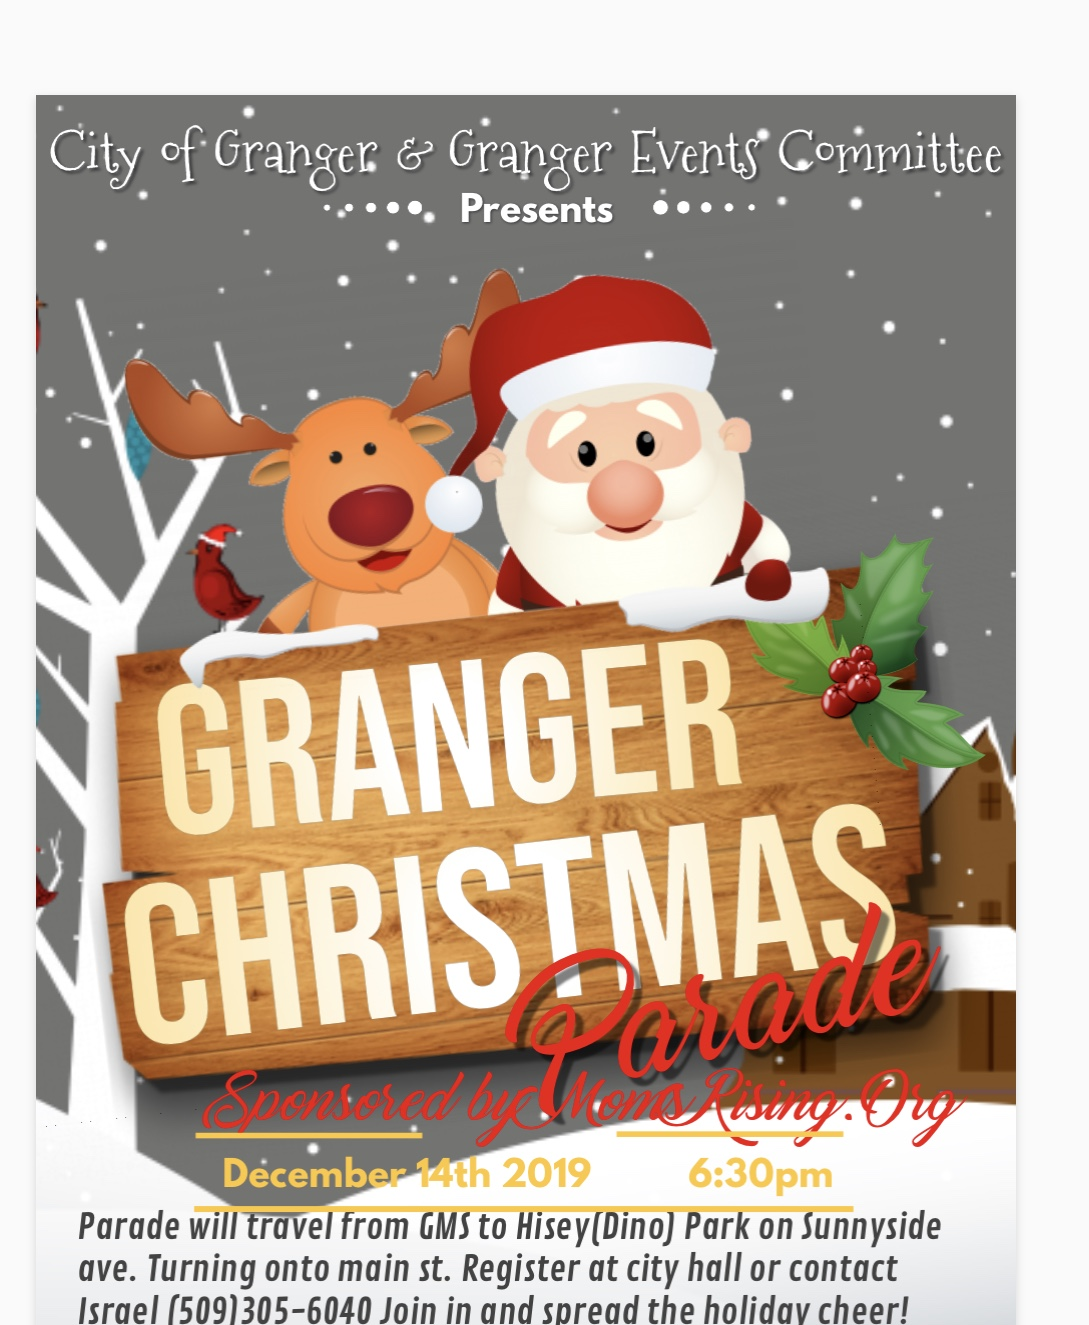 Granger Christmas Parade @ City of Granger